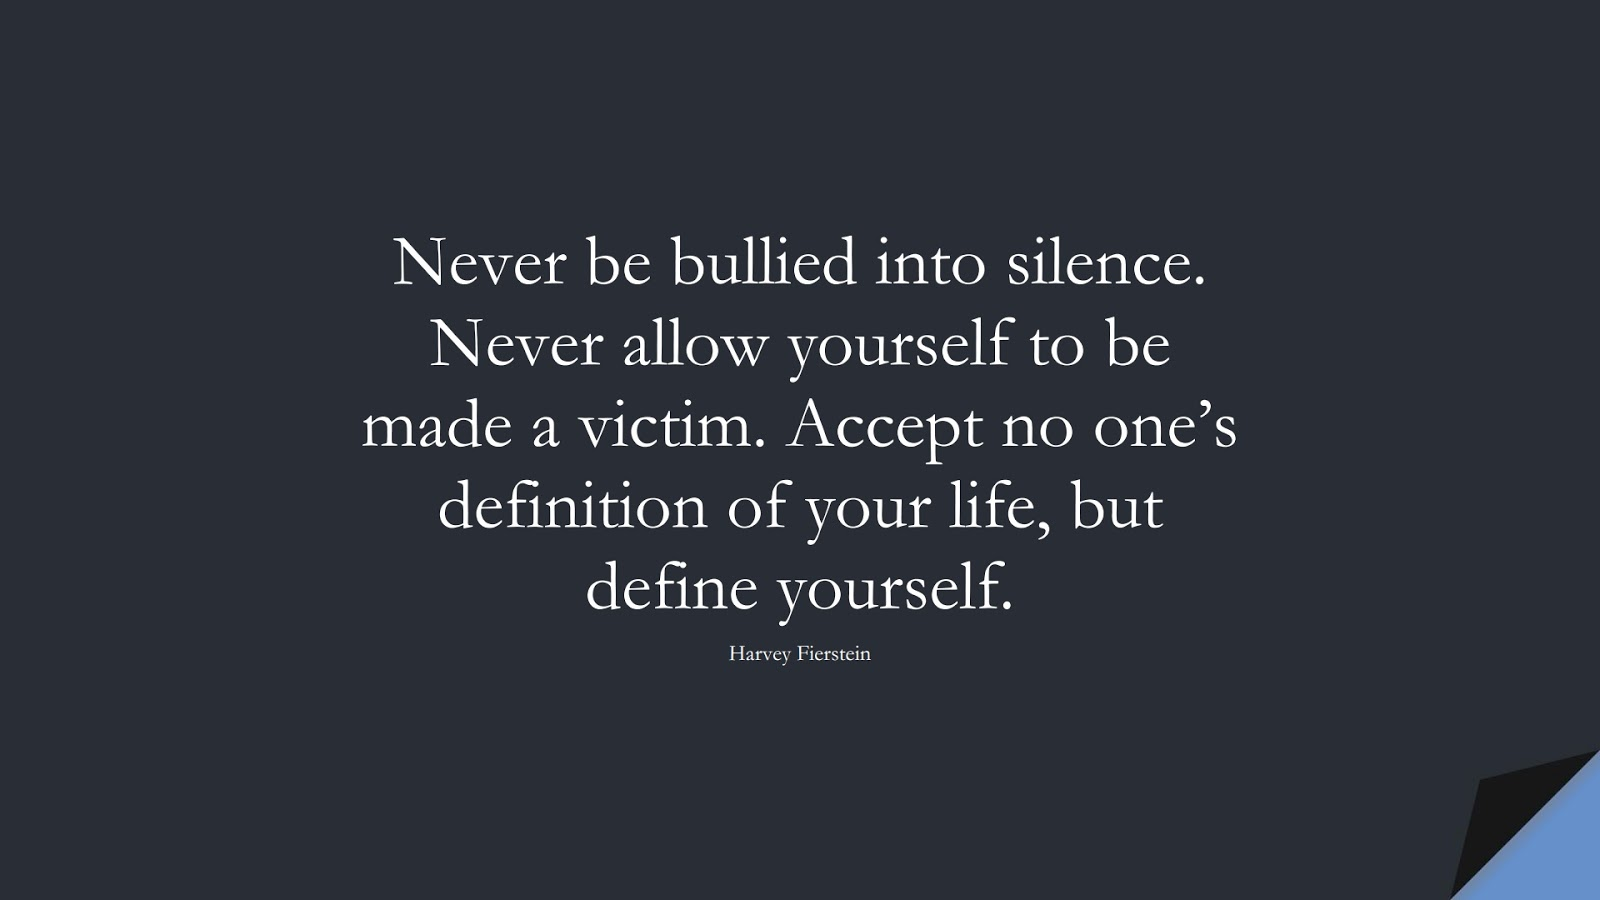 Never be bullied into silence. Never allow yourself to be made a victim. Accept no one's definition of your life, but define yourself. (Harvey Fierstein);  #SelfEsteemQuotes